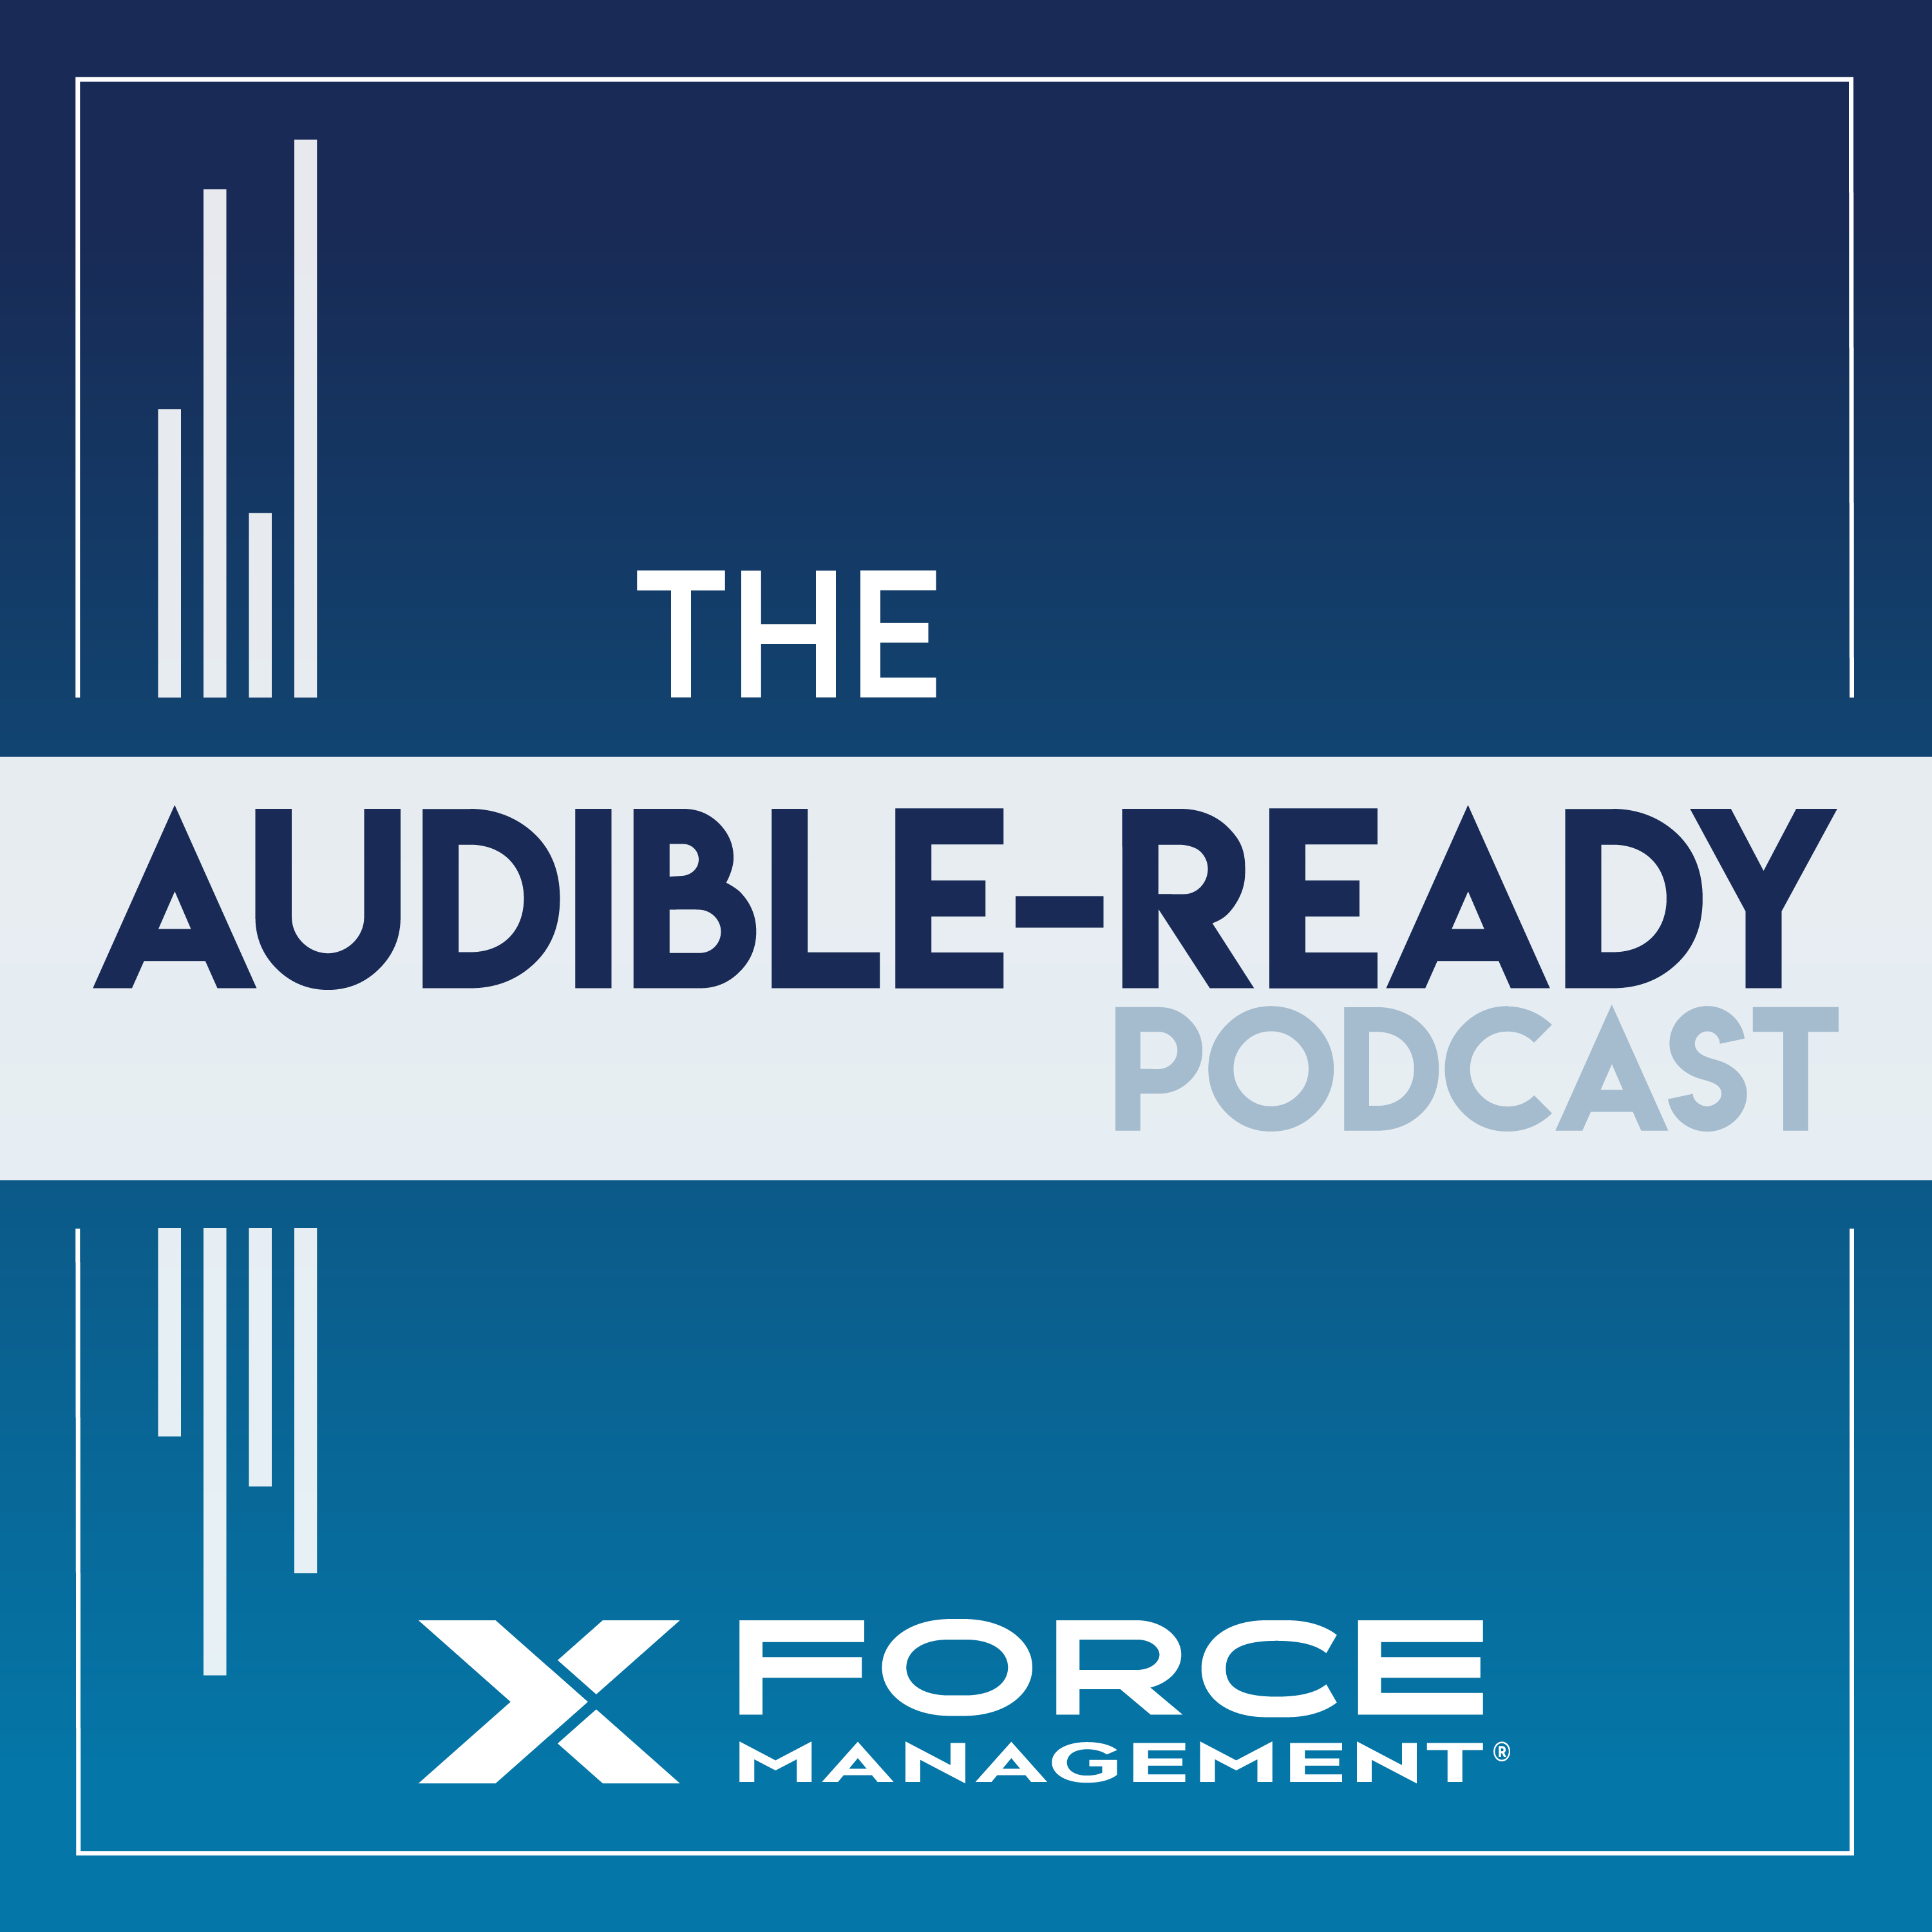 The Audible-Ready Podcast show art